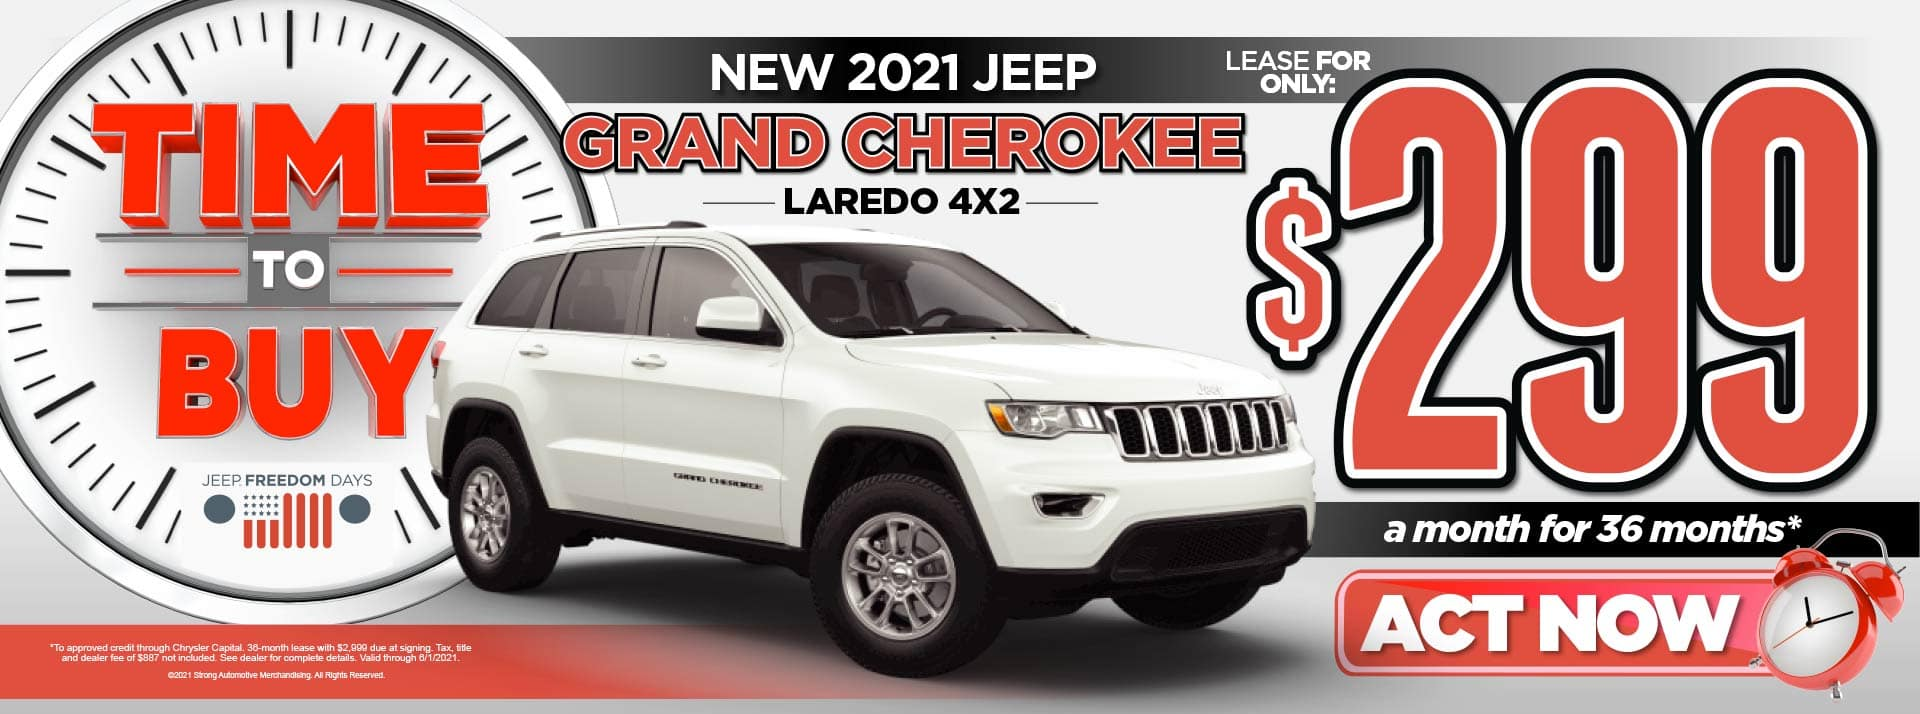 NEW 2021 JEEP GRAND CHEROKEE LEASE FOR $299/MO* ACT NOW